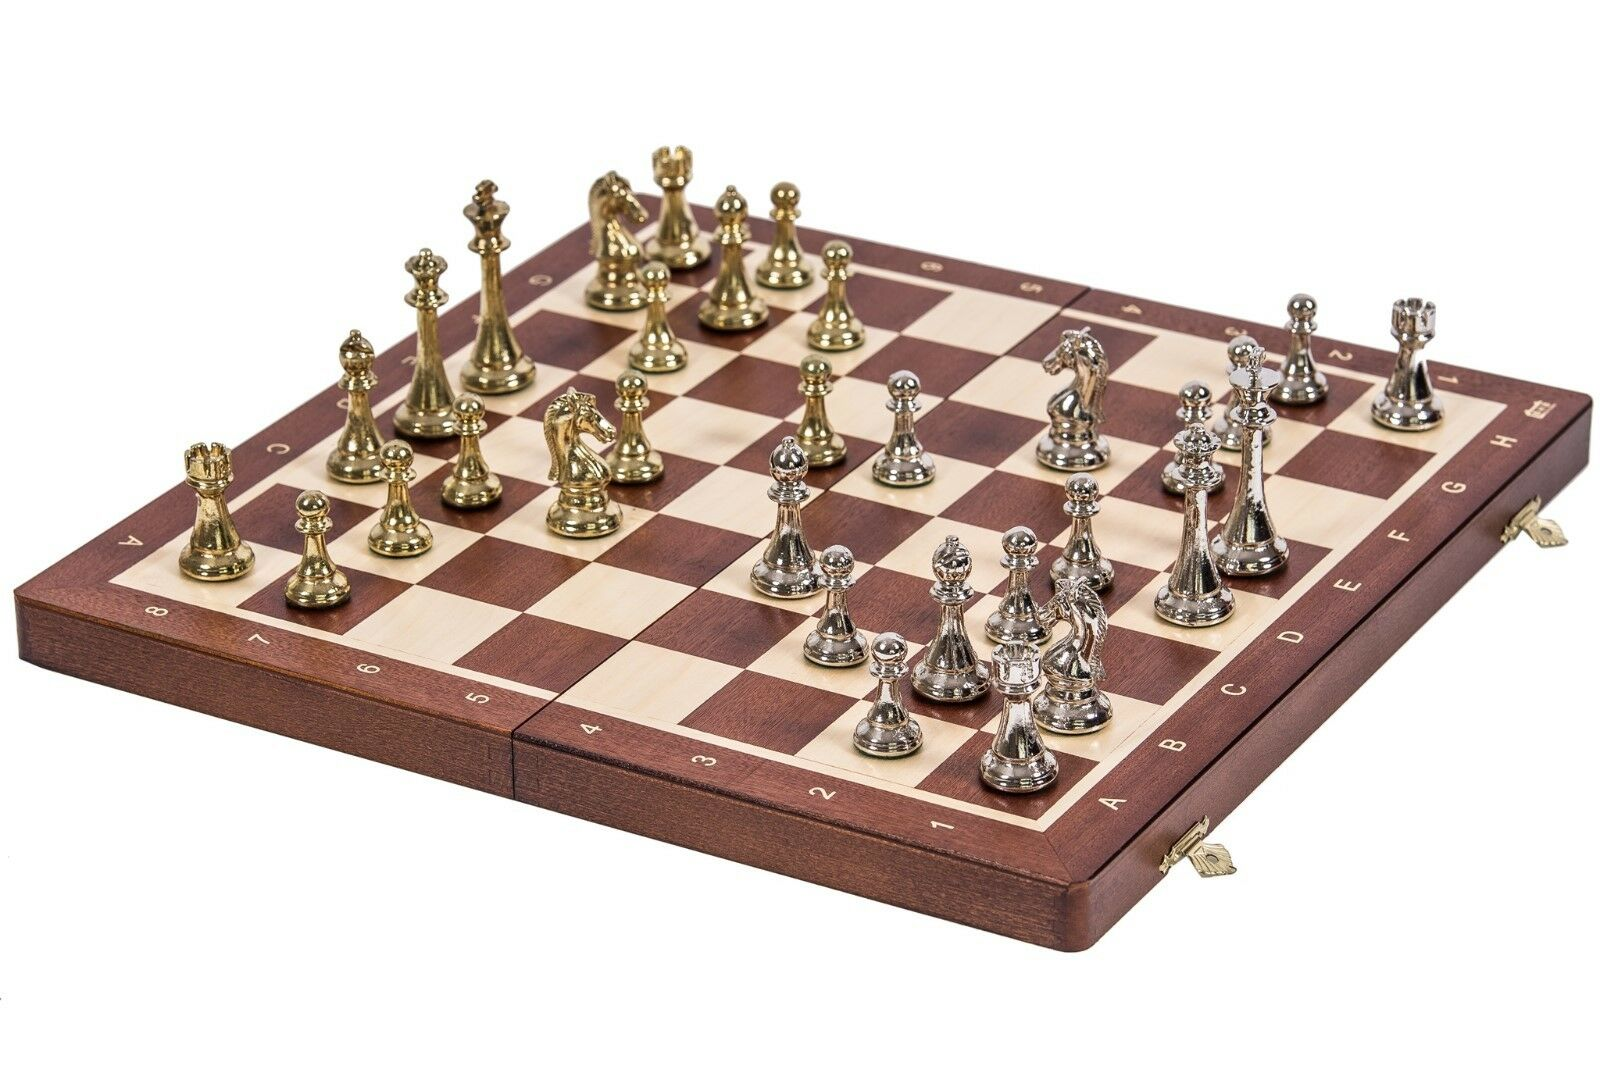 SQUARE - Chess Tournament No. 4  - Mahogany   Metal - Chessboard & Chess Pieces